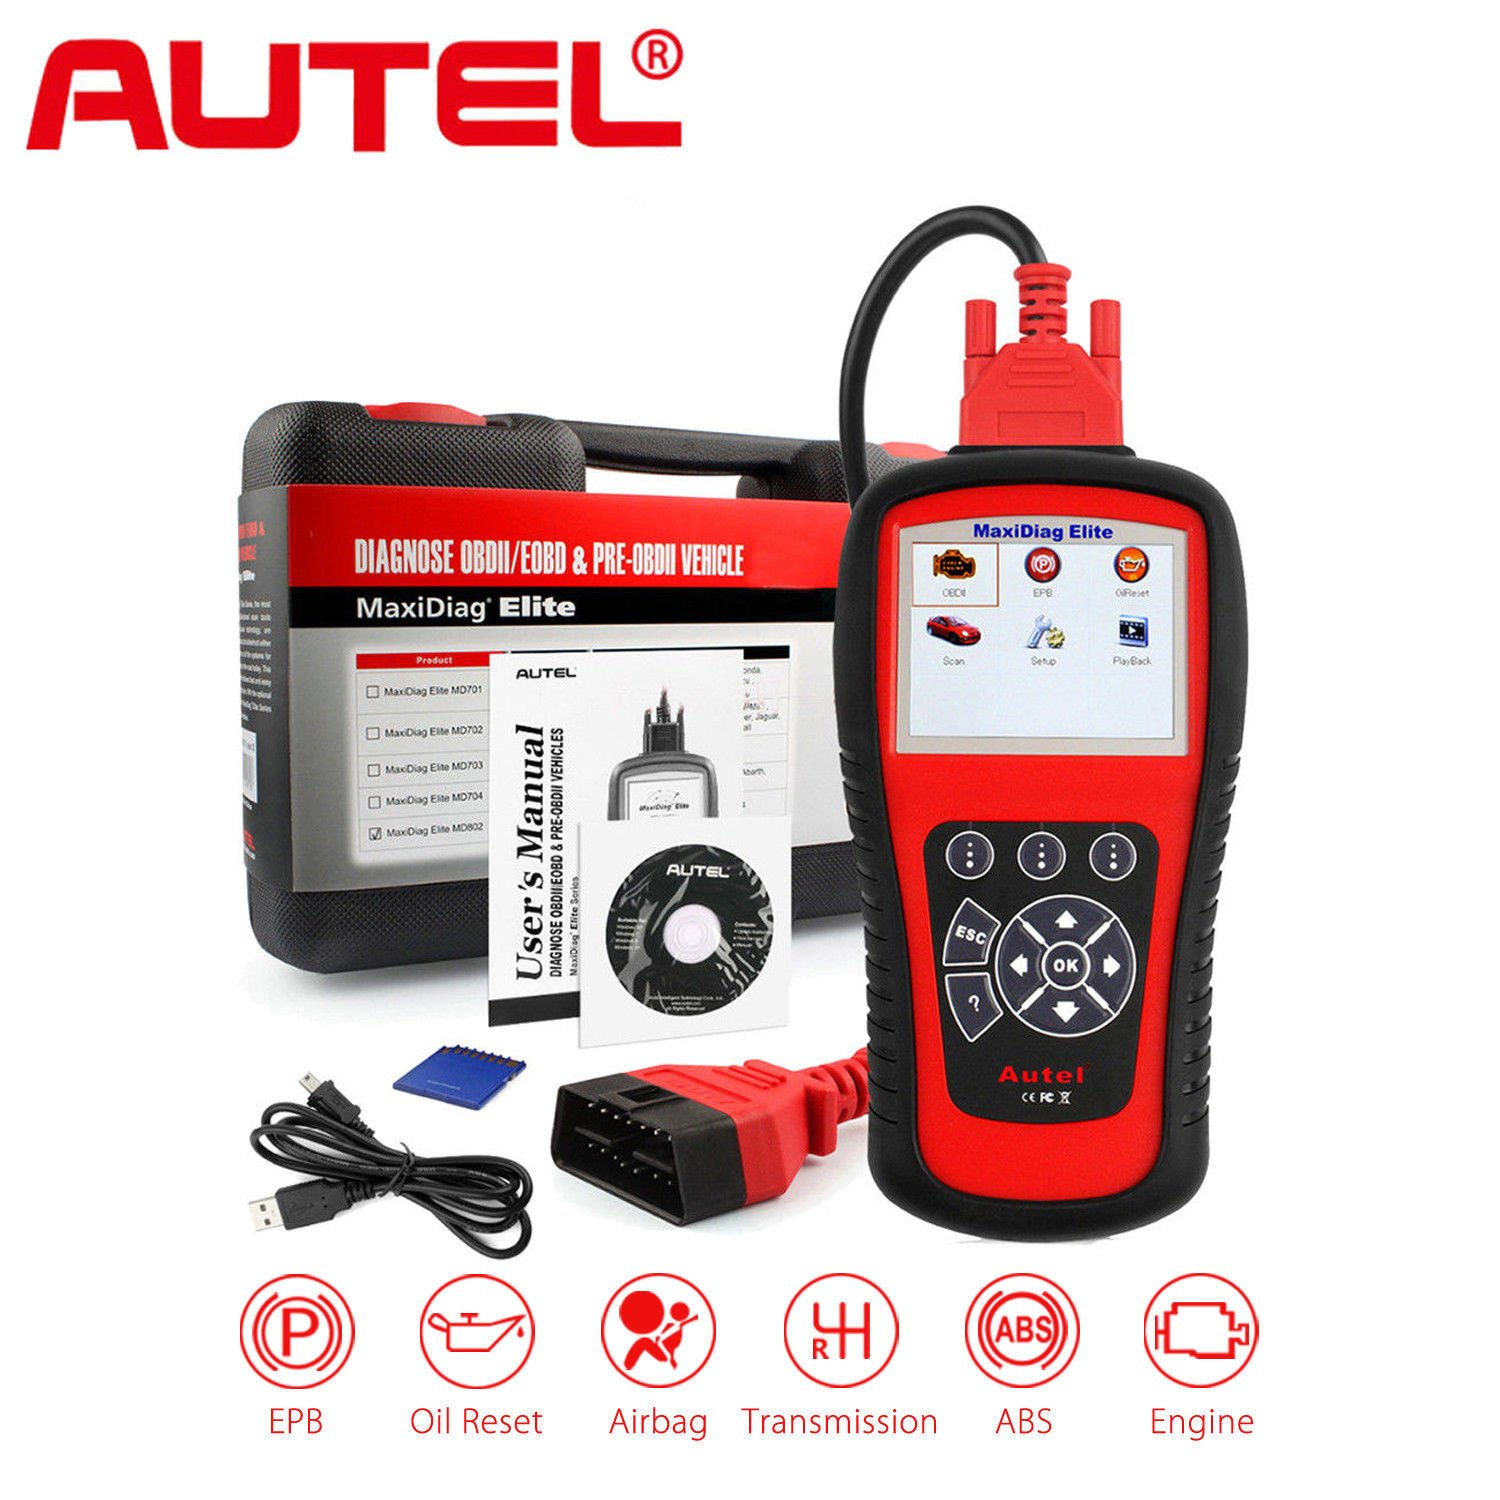 Upgraded Version of ML619 MIL Autel ML629 OBD2 Scanner Code Reader with AutoVIN Function+ABS//SRS//Engine//Transmission Diagnostic Scan Tool Turns Off Engine Light and ABS//SRS Warning Lights